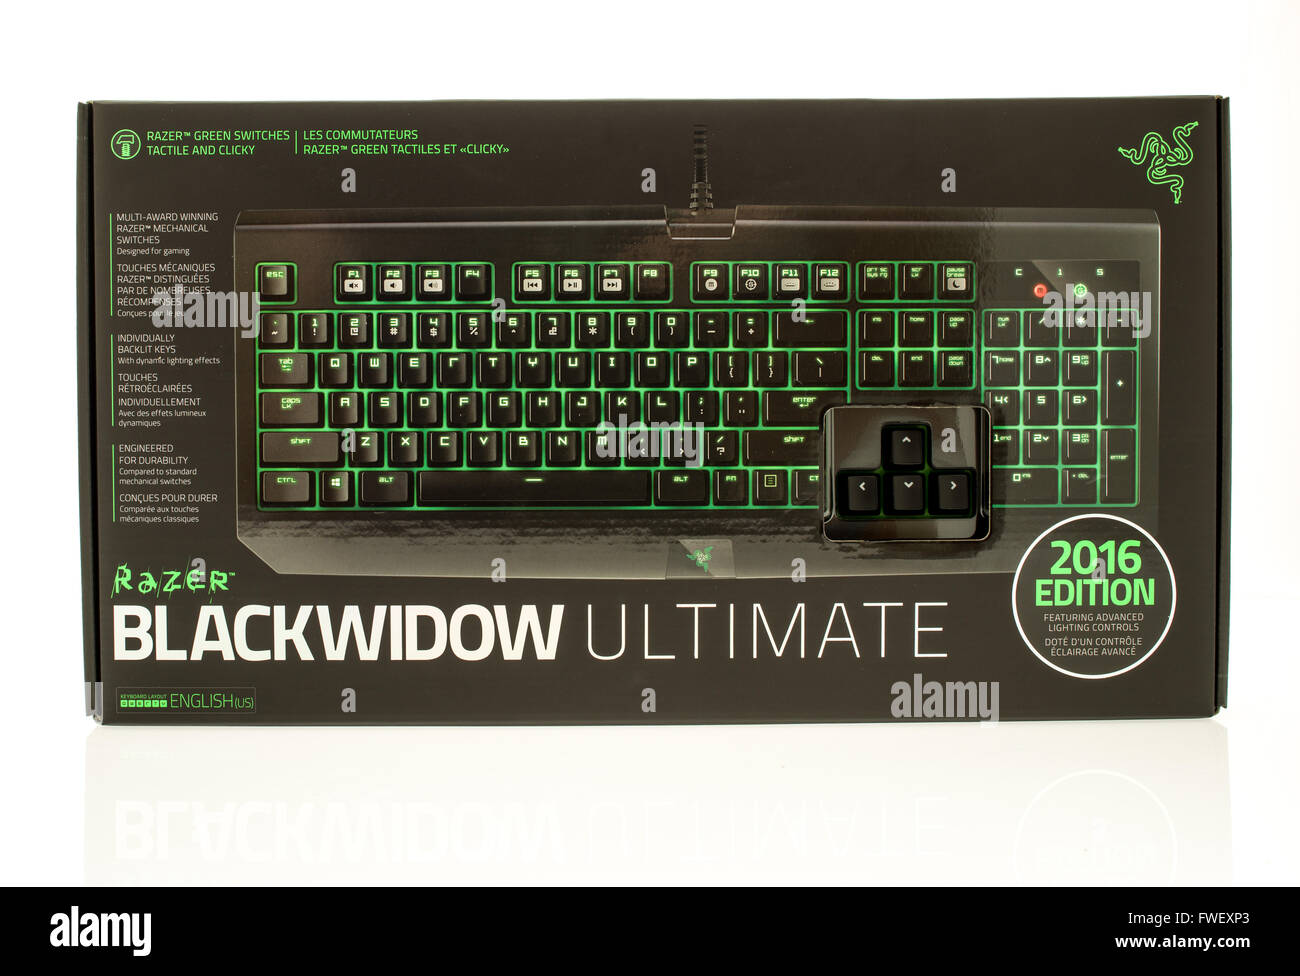 Winneconne, WI - 28 March 2016:  Package fo a Blackwidow utlimate gaming keyboard made by Razer. - Stock Image